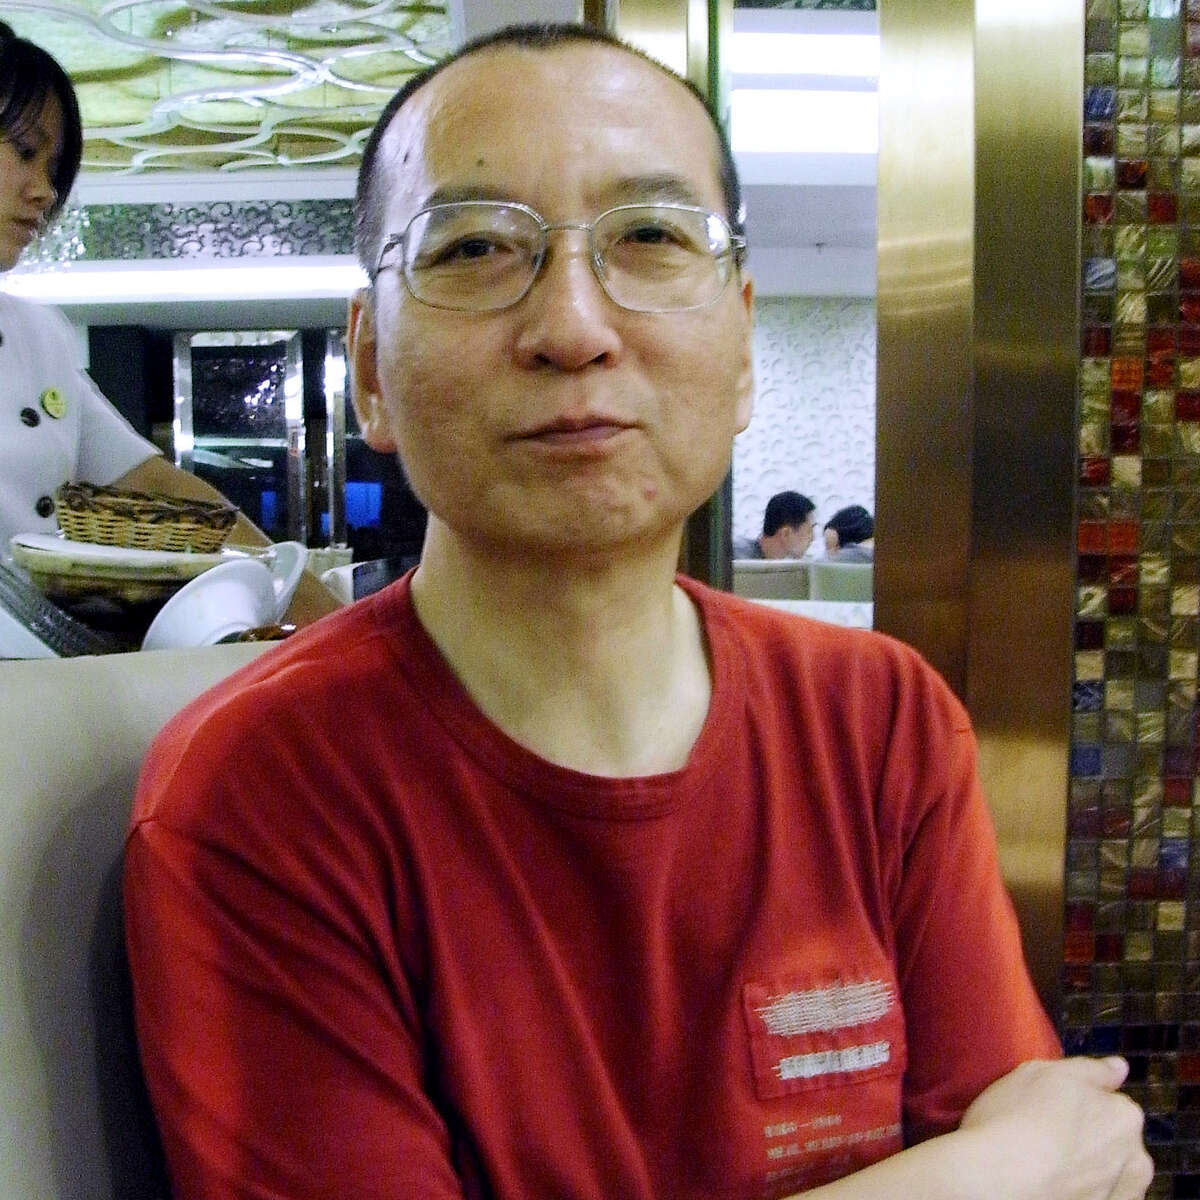 FILE - In this July 30, 2008 photo, Chinese dissident Liu Xiaobo speaks during an interview with Japan's Kyodo News in Beijing. Liu died Thursday, July 13, 2017, of liver cancer while serving an 11-year sentence for incitement to subvert state power. He was 61. As tributes rolled in Friday, July 14, 2017, to mourn China's most famous political prisoner Liu, a newspaper published by the ruling Communist Party dismissed late Nobel Peace Prize laureate Liu as a pawn of the West whose legacy will soon fade. (Kyodo News via AP)